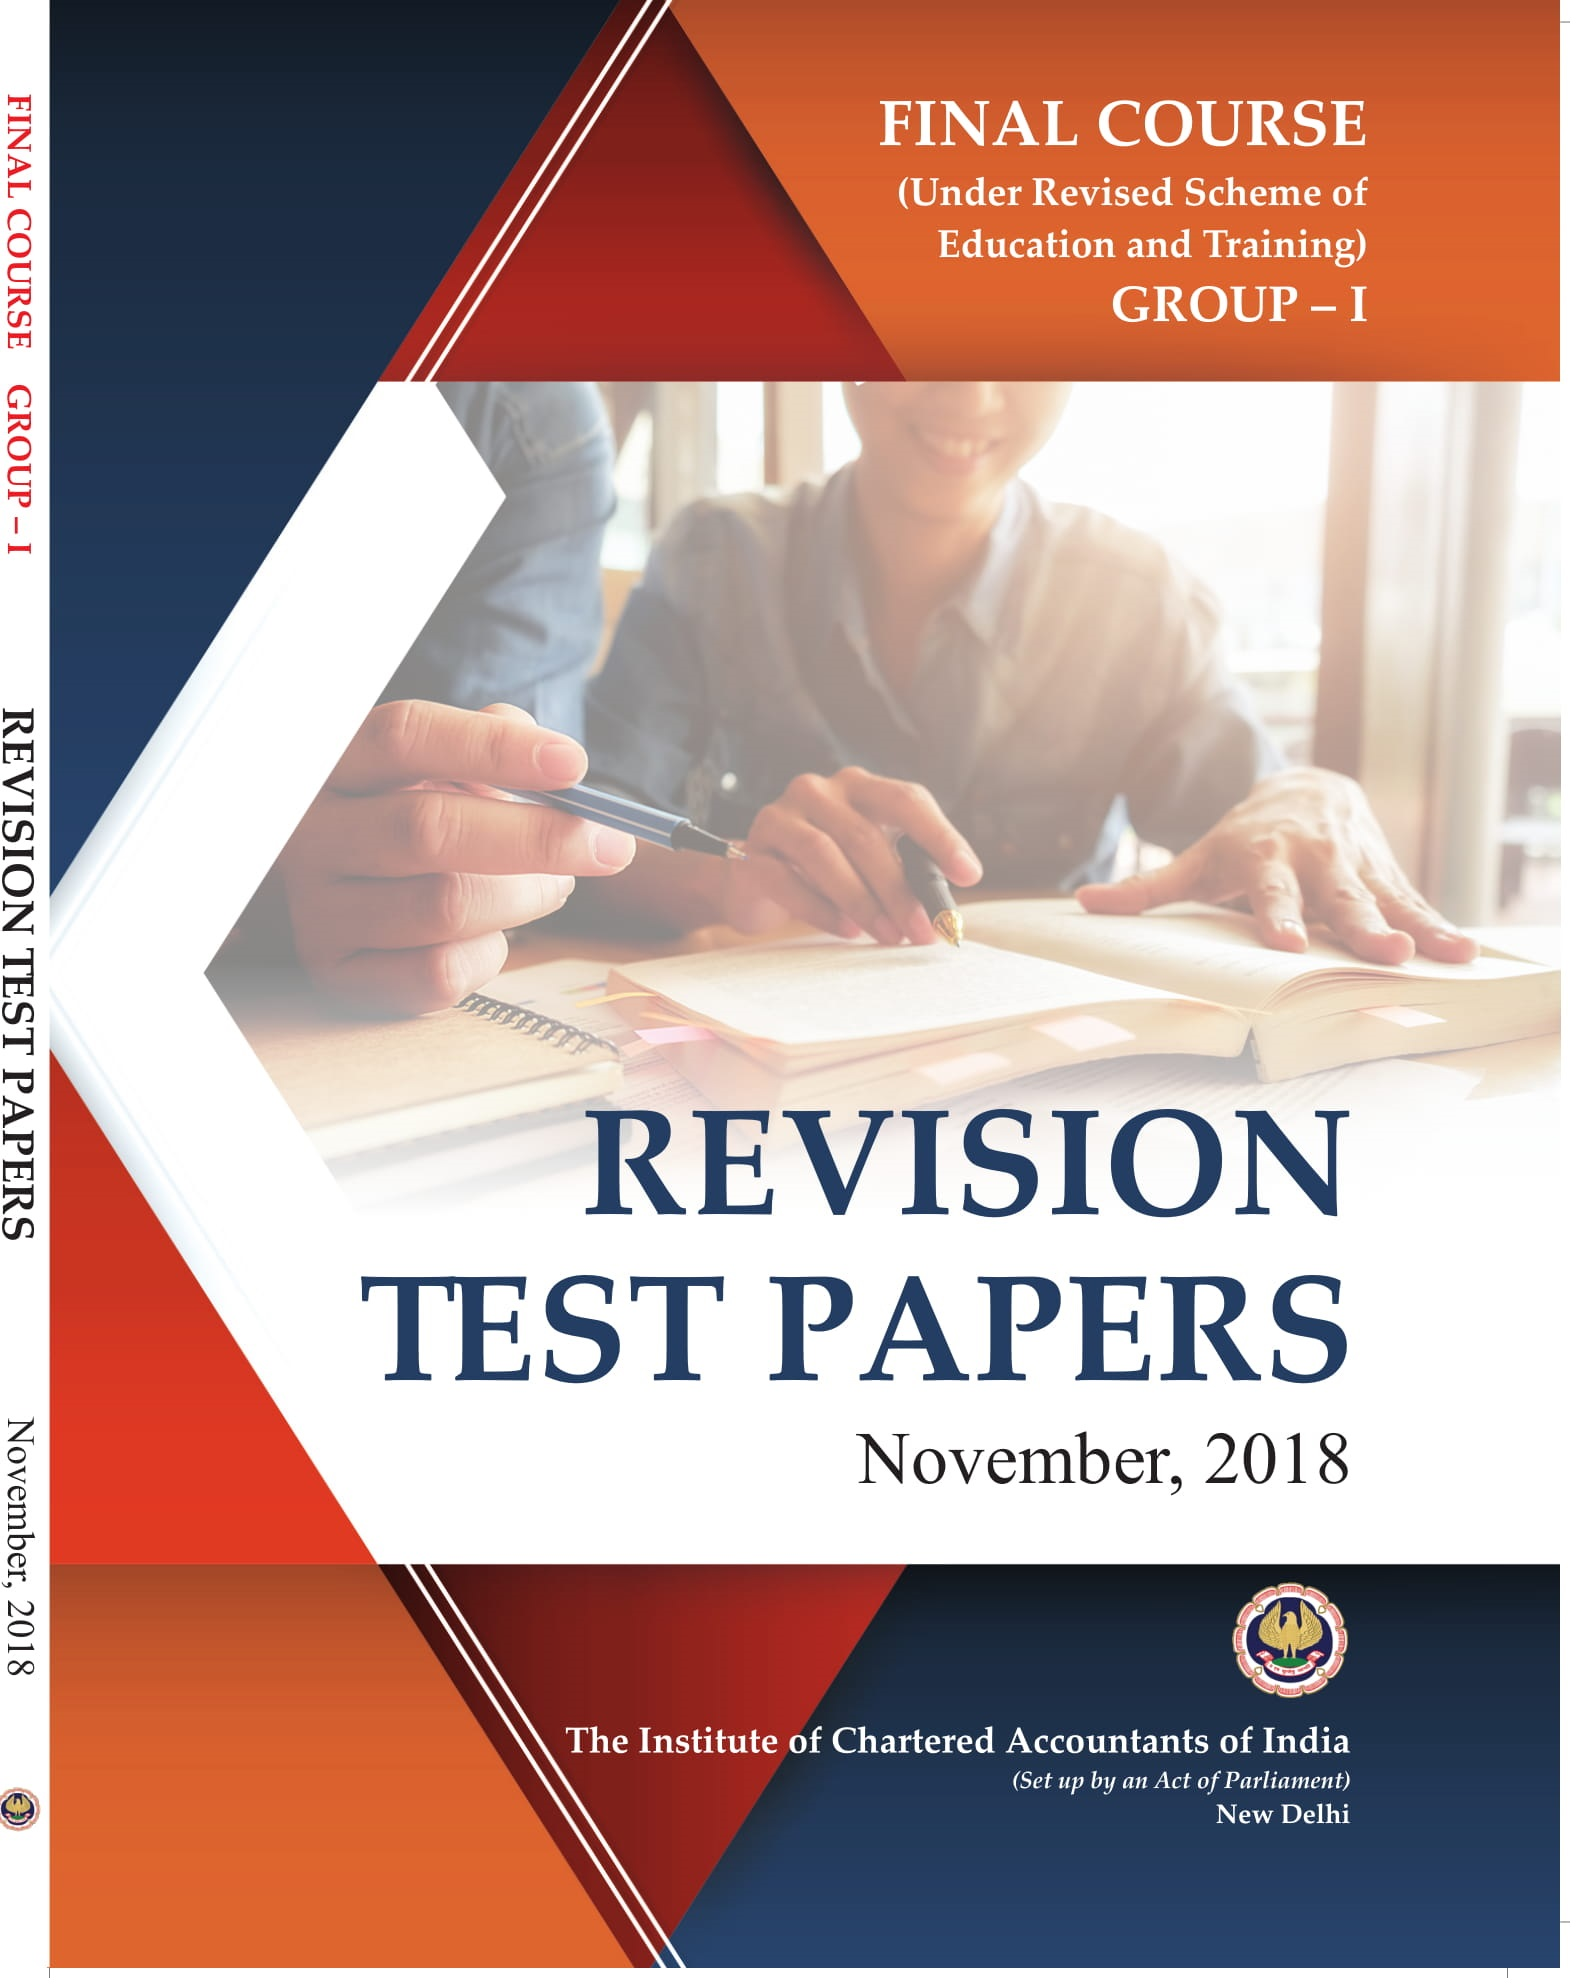 Final Course (Under Revised Scheme of Education and Training) - Group - I - Revision Test Papers - November, 2018